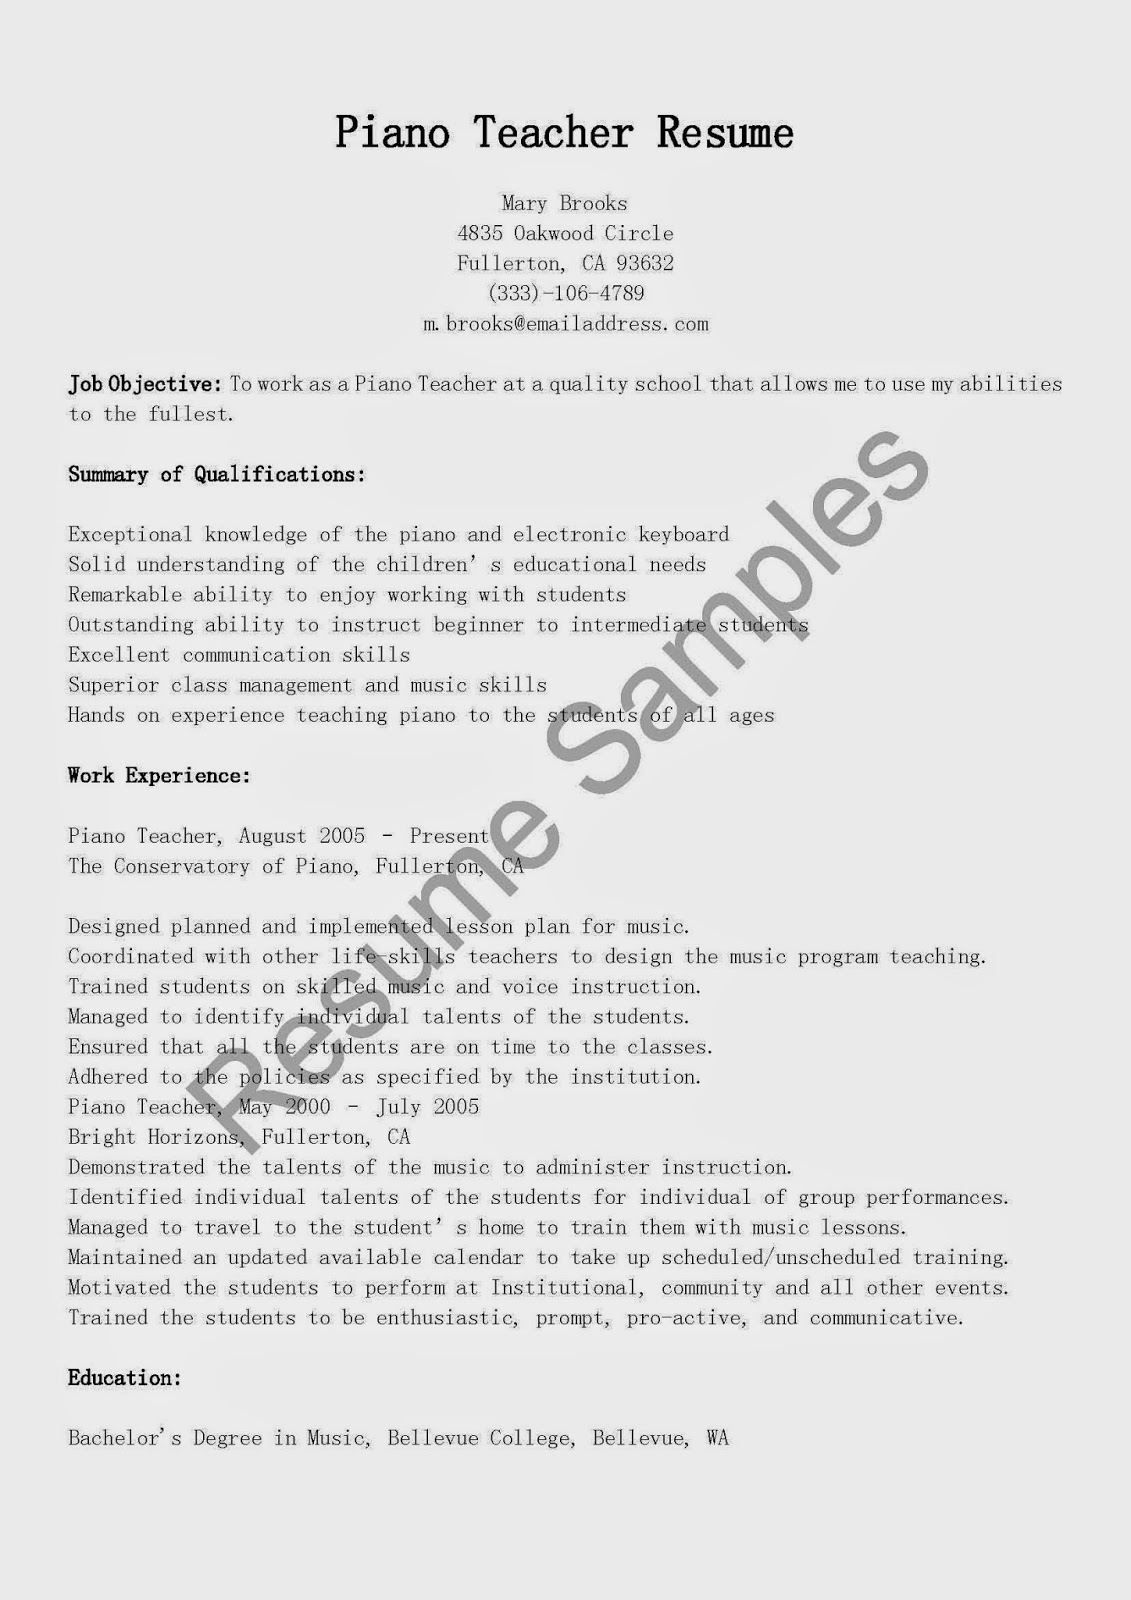 Sample Teacher Resume Templates Resume Samples Piano Teacher Resume Sample